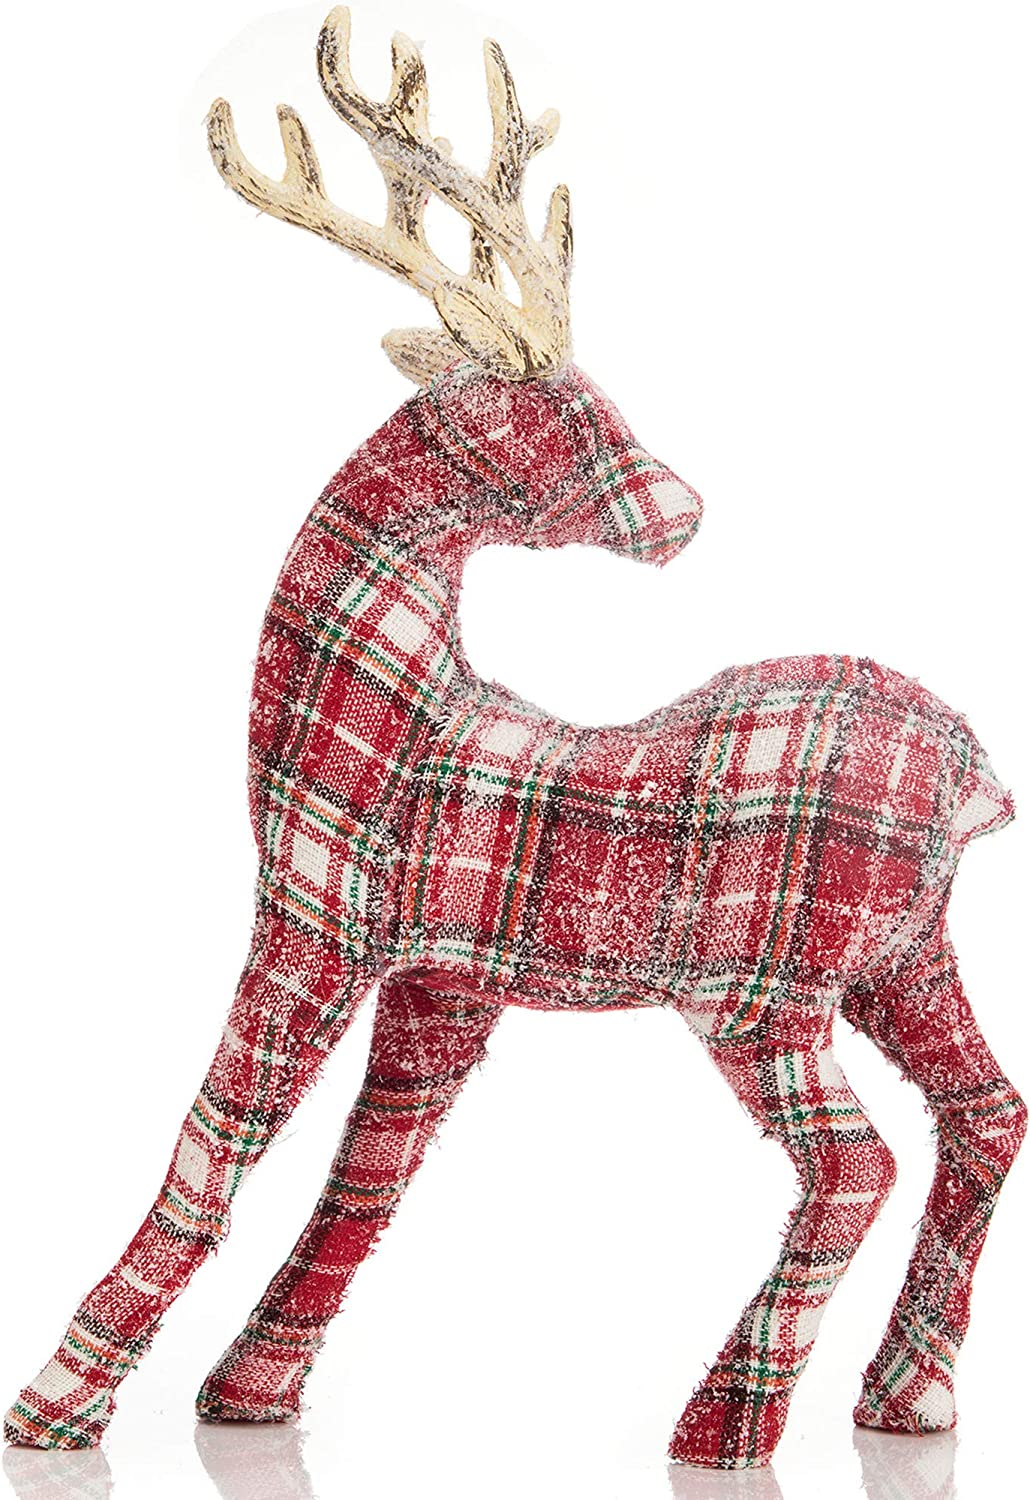 iPEGTOP Glitter Shiny Christmas Reindeer Holiday Figurine, 18 inch Large Table Desk Christmas Standing Deer Home Office Decor Statues Party Supplies, Red Tartan